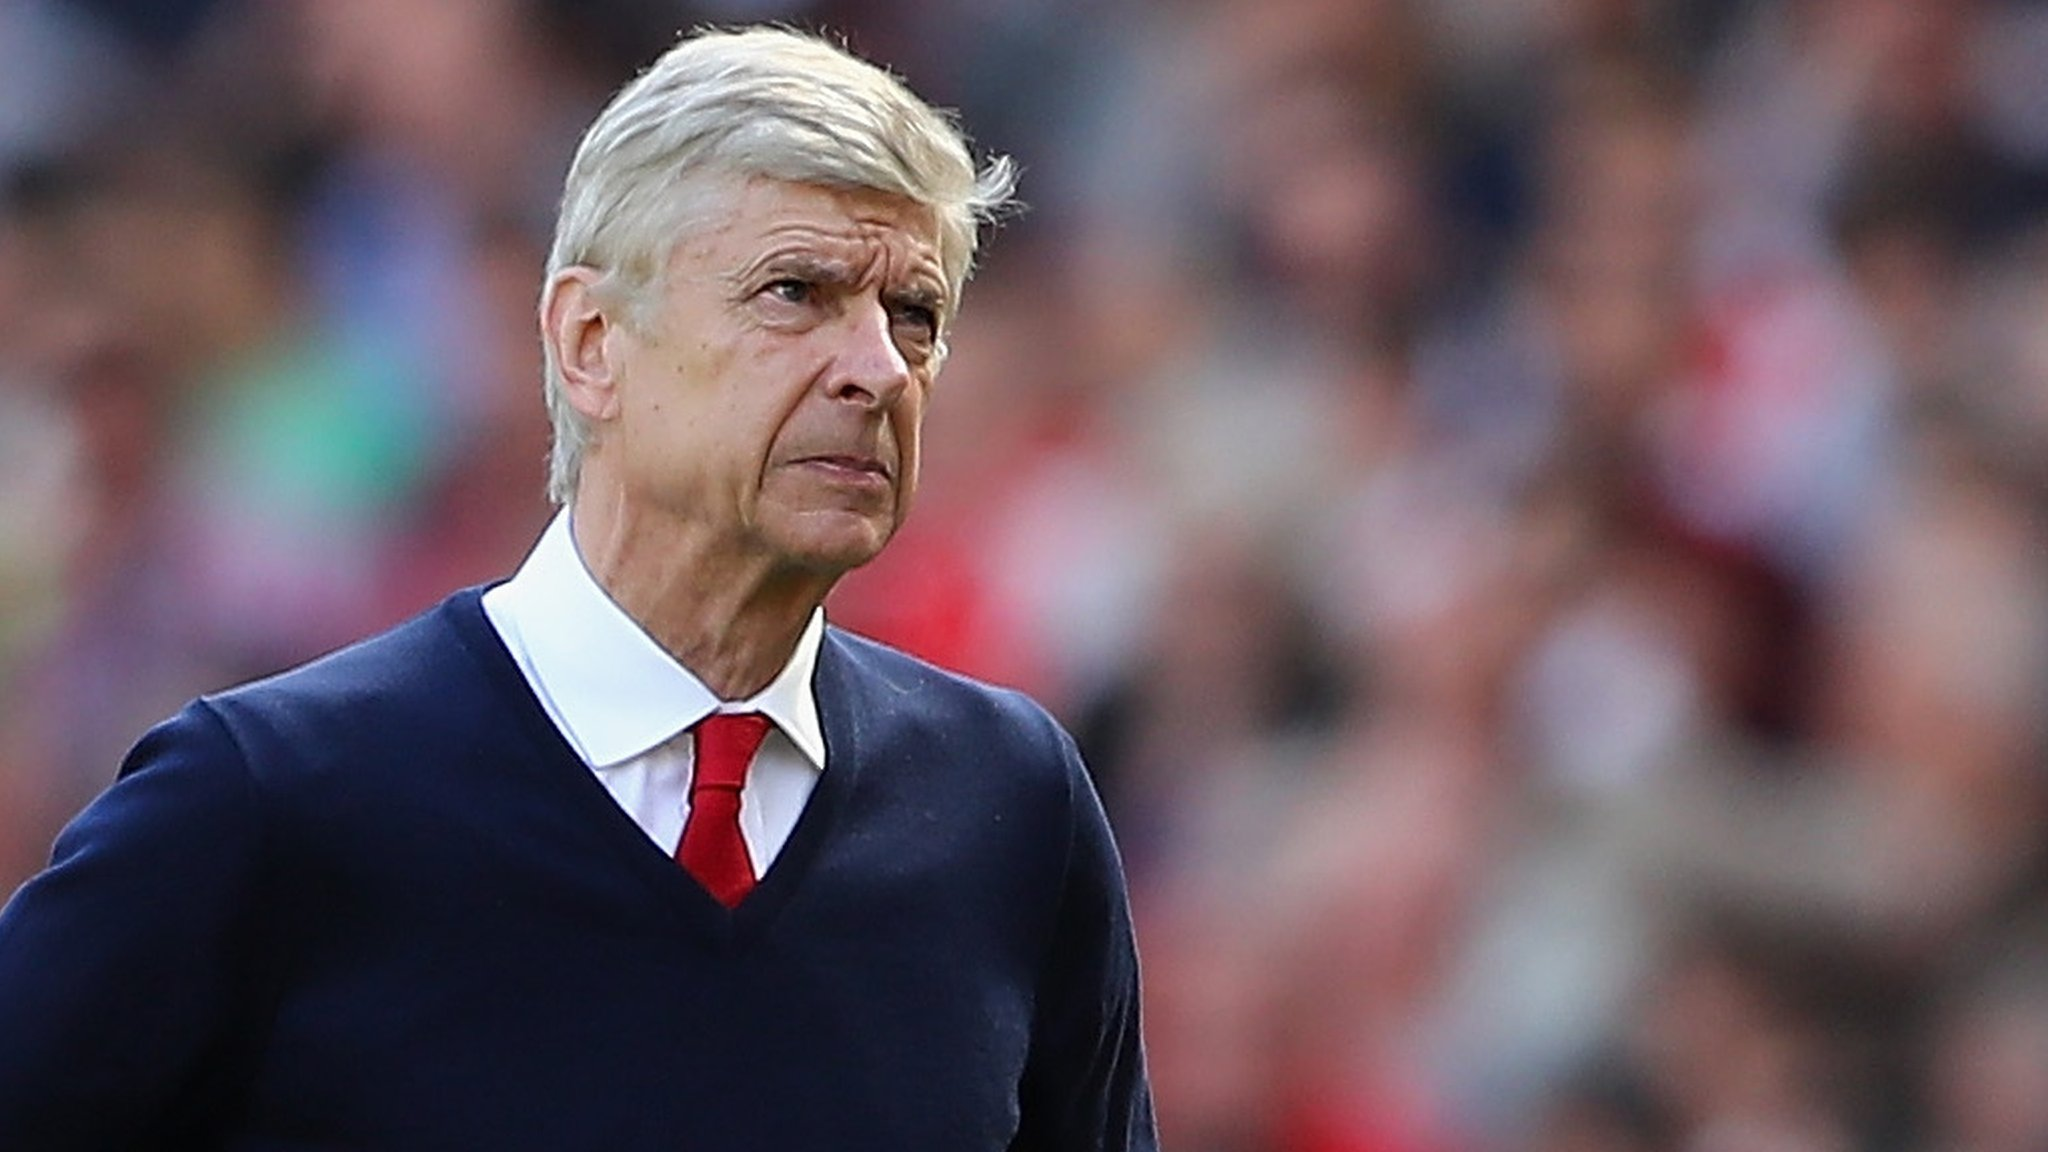 Lack of respect towards me a disgrace - Arsenal manager Wenger